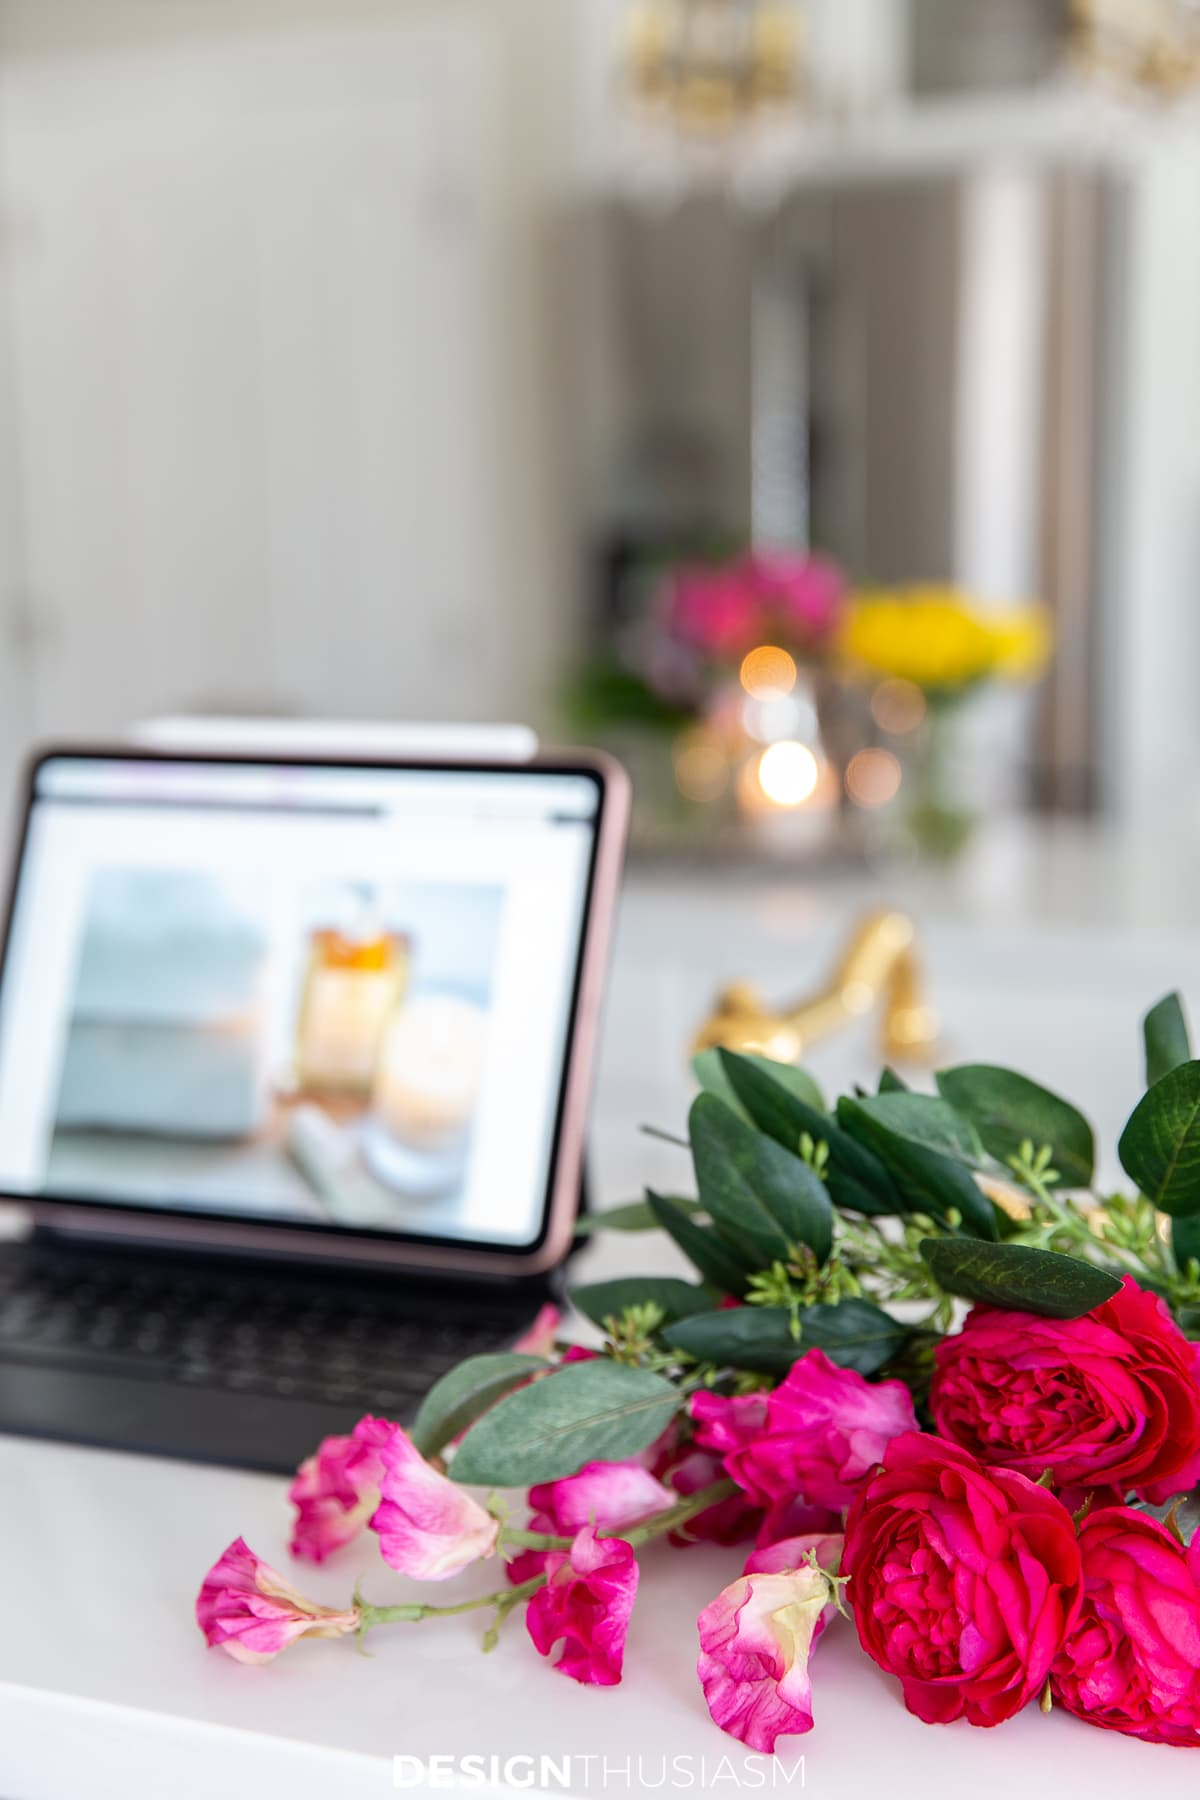 Life hacks for home iPad and flowers